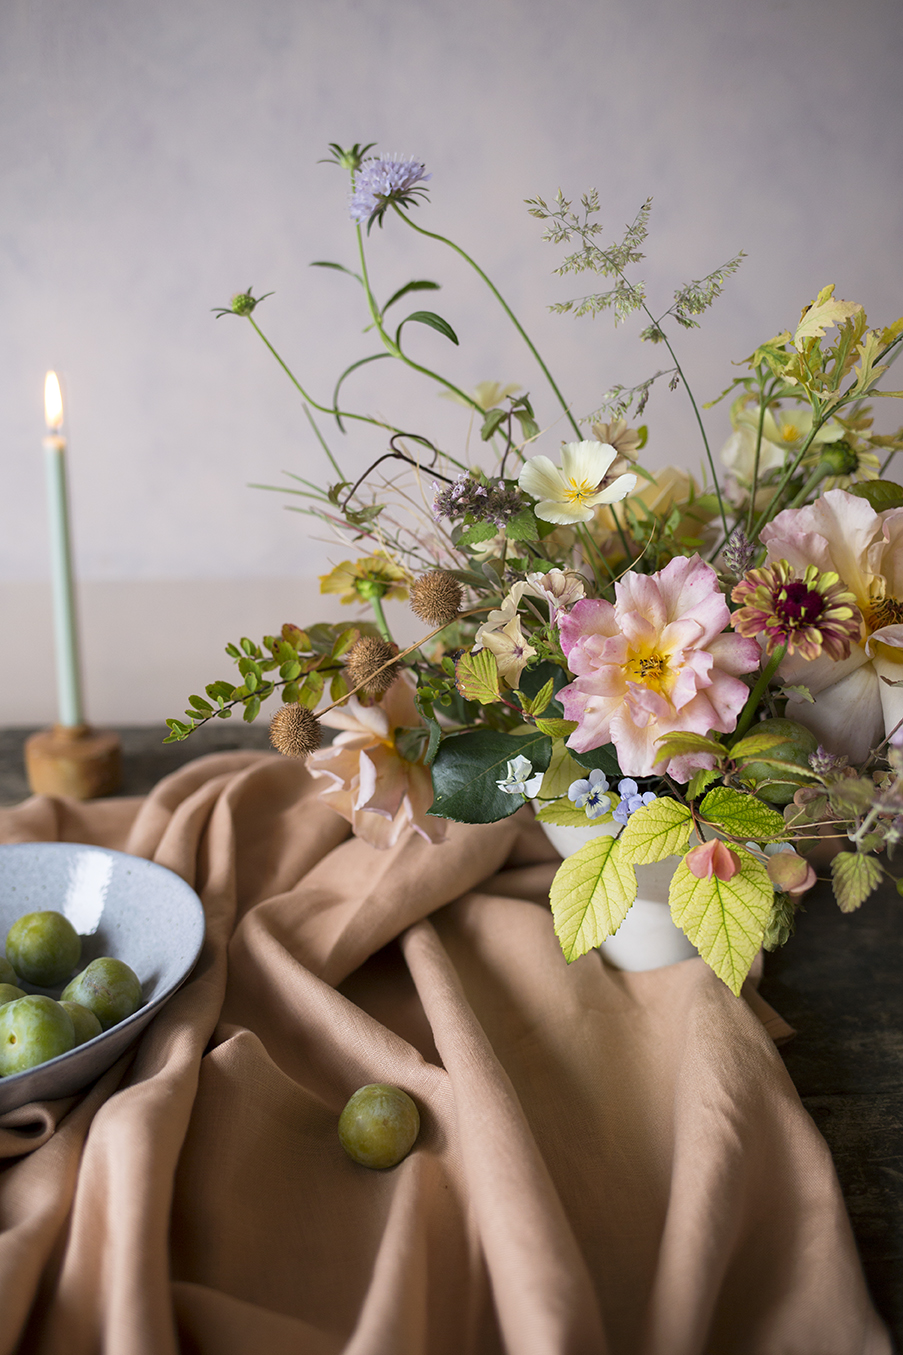 An autumnal flower arrangement with roses and pansies at a workshop at Aesme Flower Studio